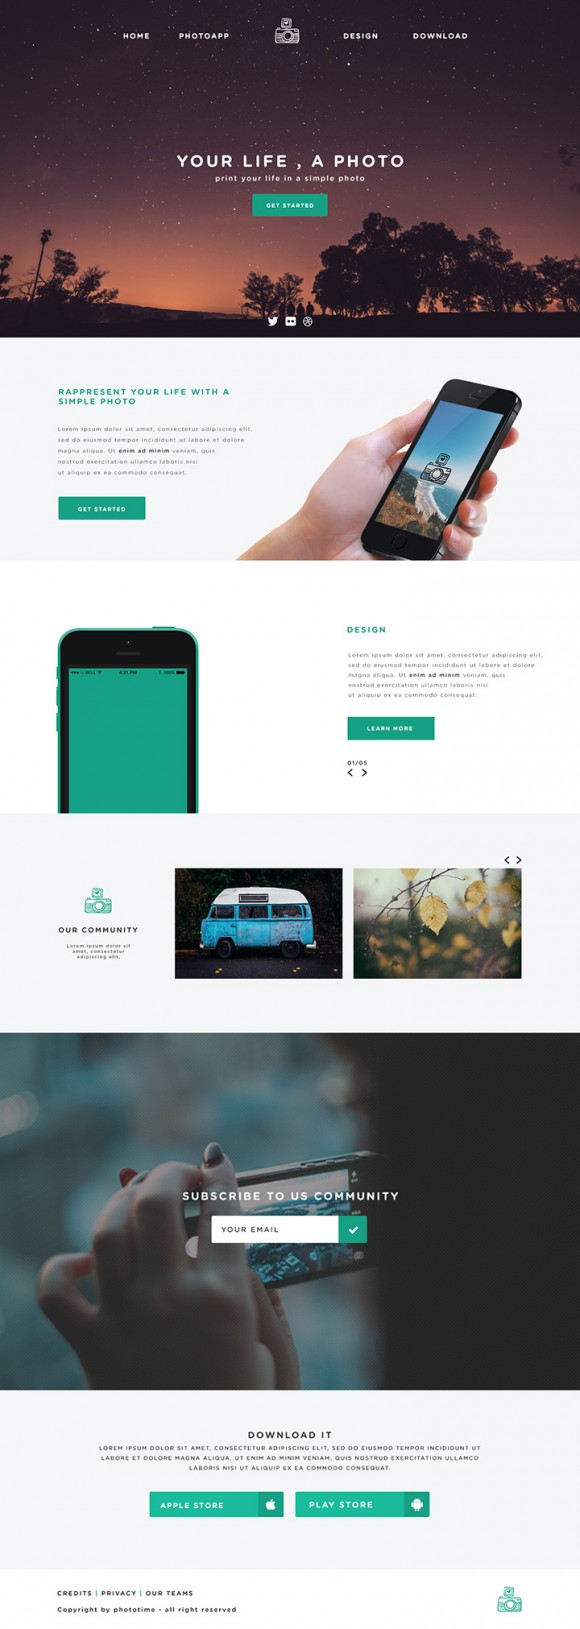 Phototime - PSD website template Full view